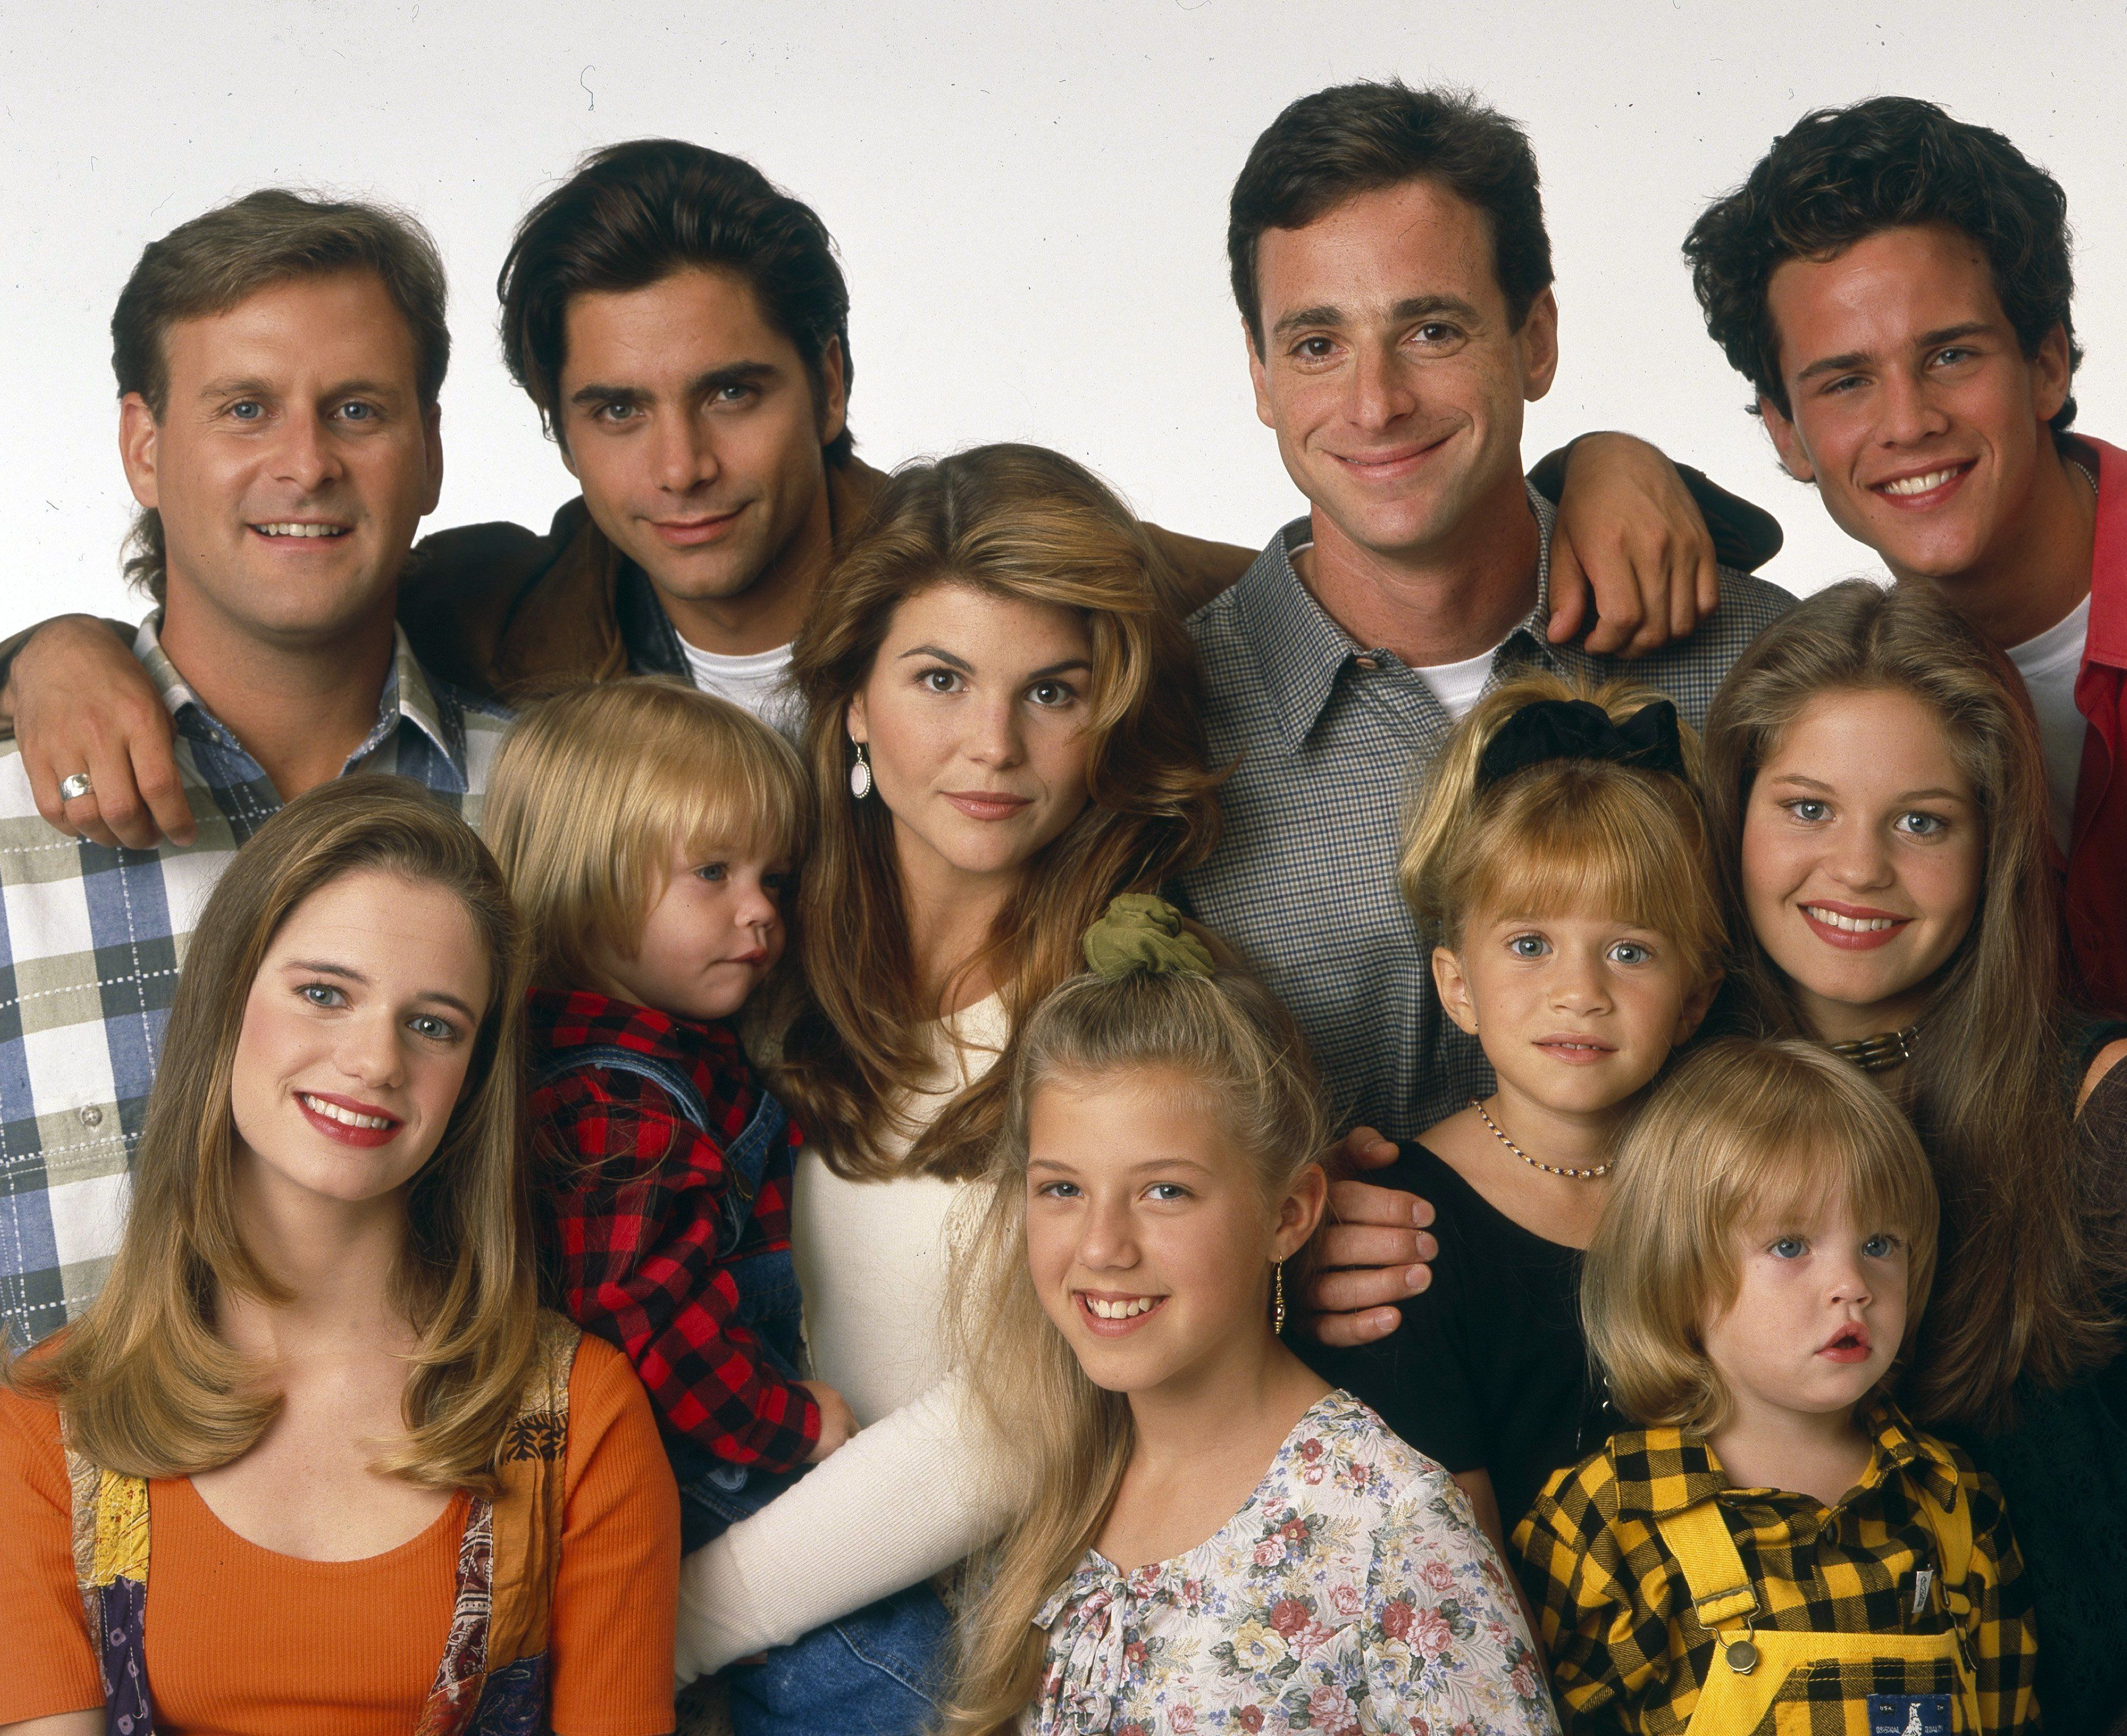 FULL HOUSE - Cast Gallery - August 30, 1993. (Photo by ABC Photo Archives/ABC via Getty Images)FOREGROUND: ANDREA BARBER;DYLAN/BLAKE TUOMY-WILHOIT;LORI LOUGHLIN;JODIE SWEETIN;MARY-KATE OLSEN;CANDACE CAMERONBACKGROUND: DAVE COULIER;JOHN STAMOS;BOB SAGET;SCOTT WEINGER